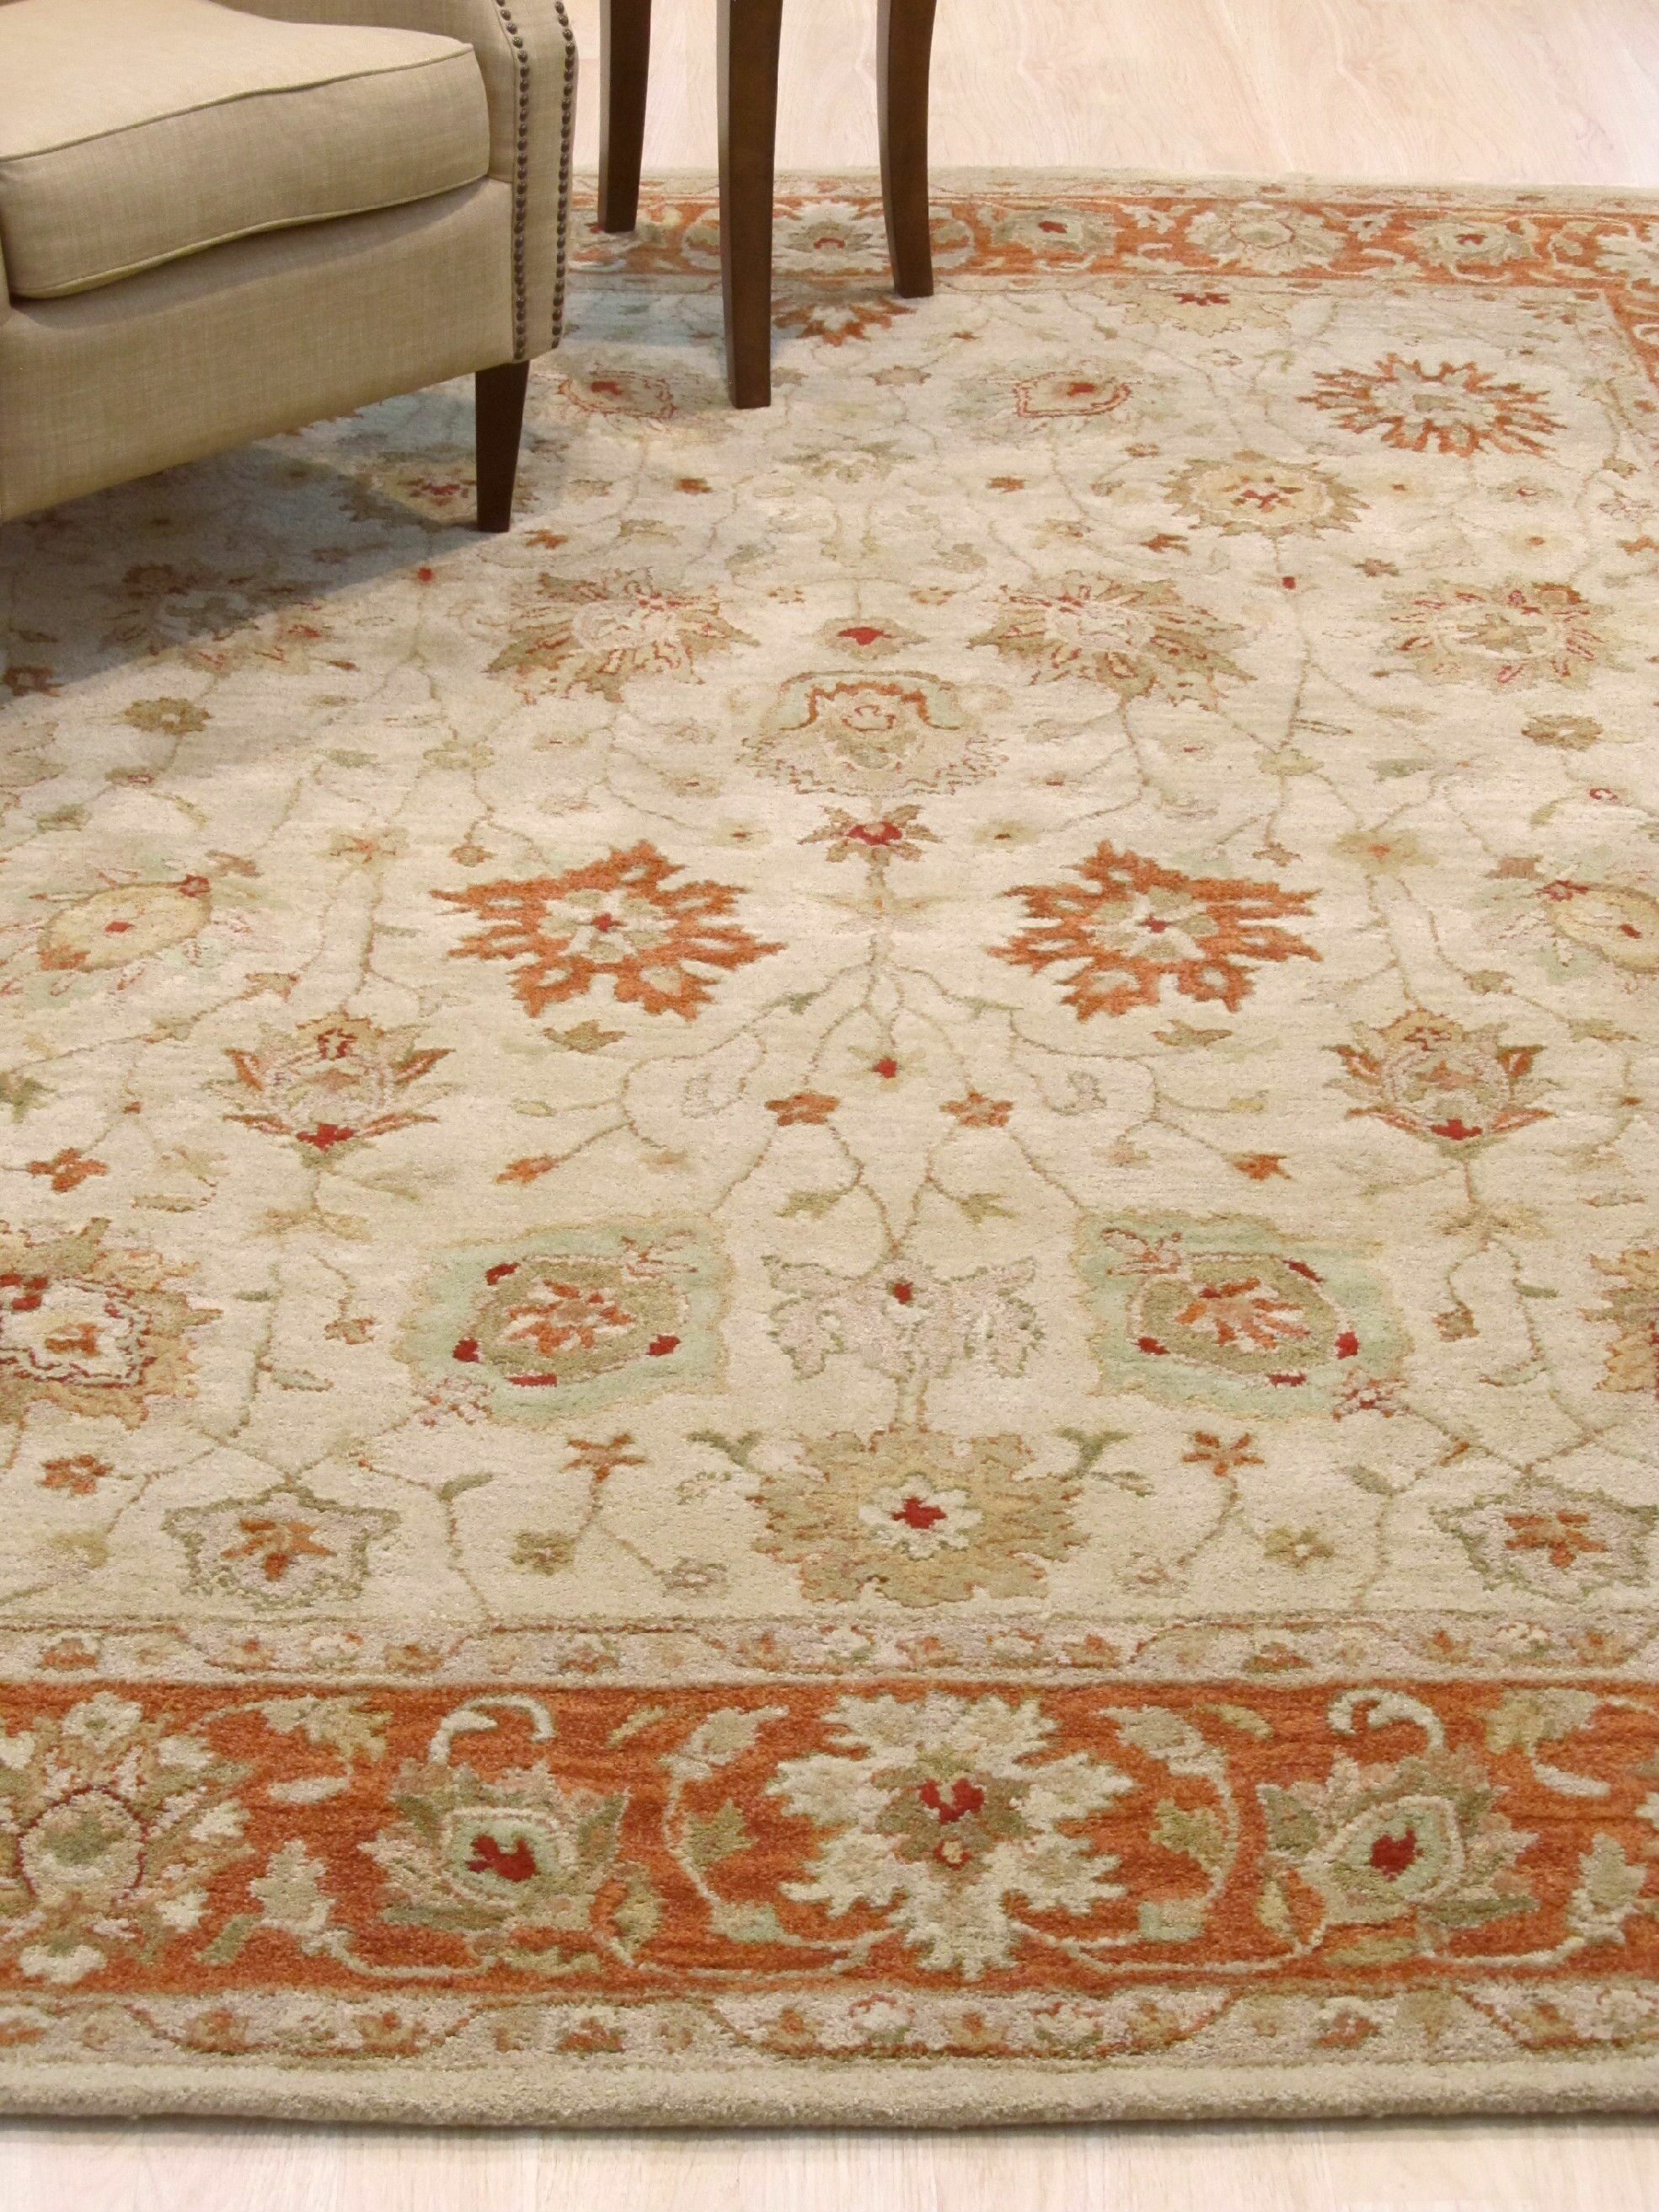 Dozier Traditional Floral Hand-Tufted Wool Beige Area Rug Rug Size: Rectangle 8' x 10'